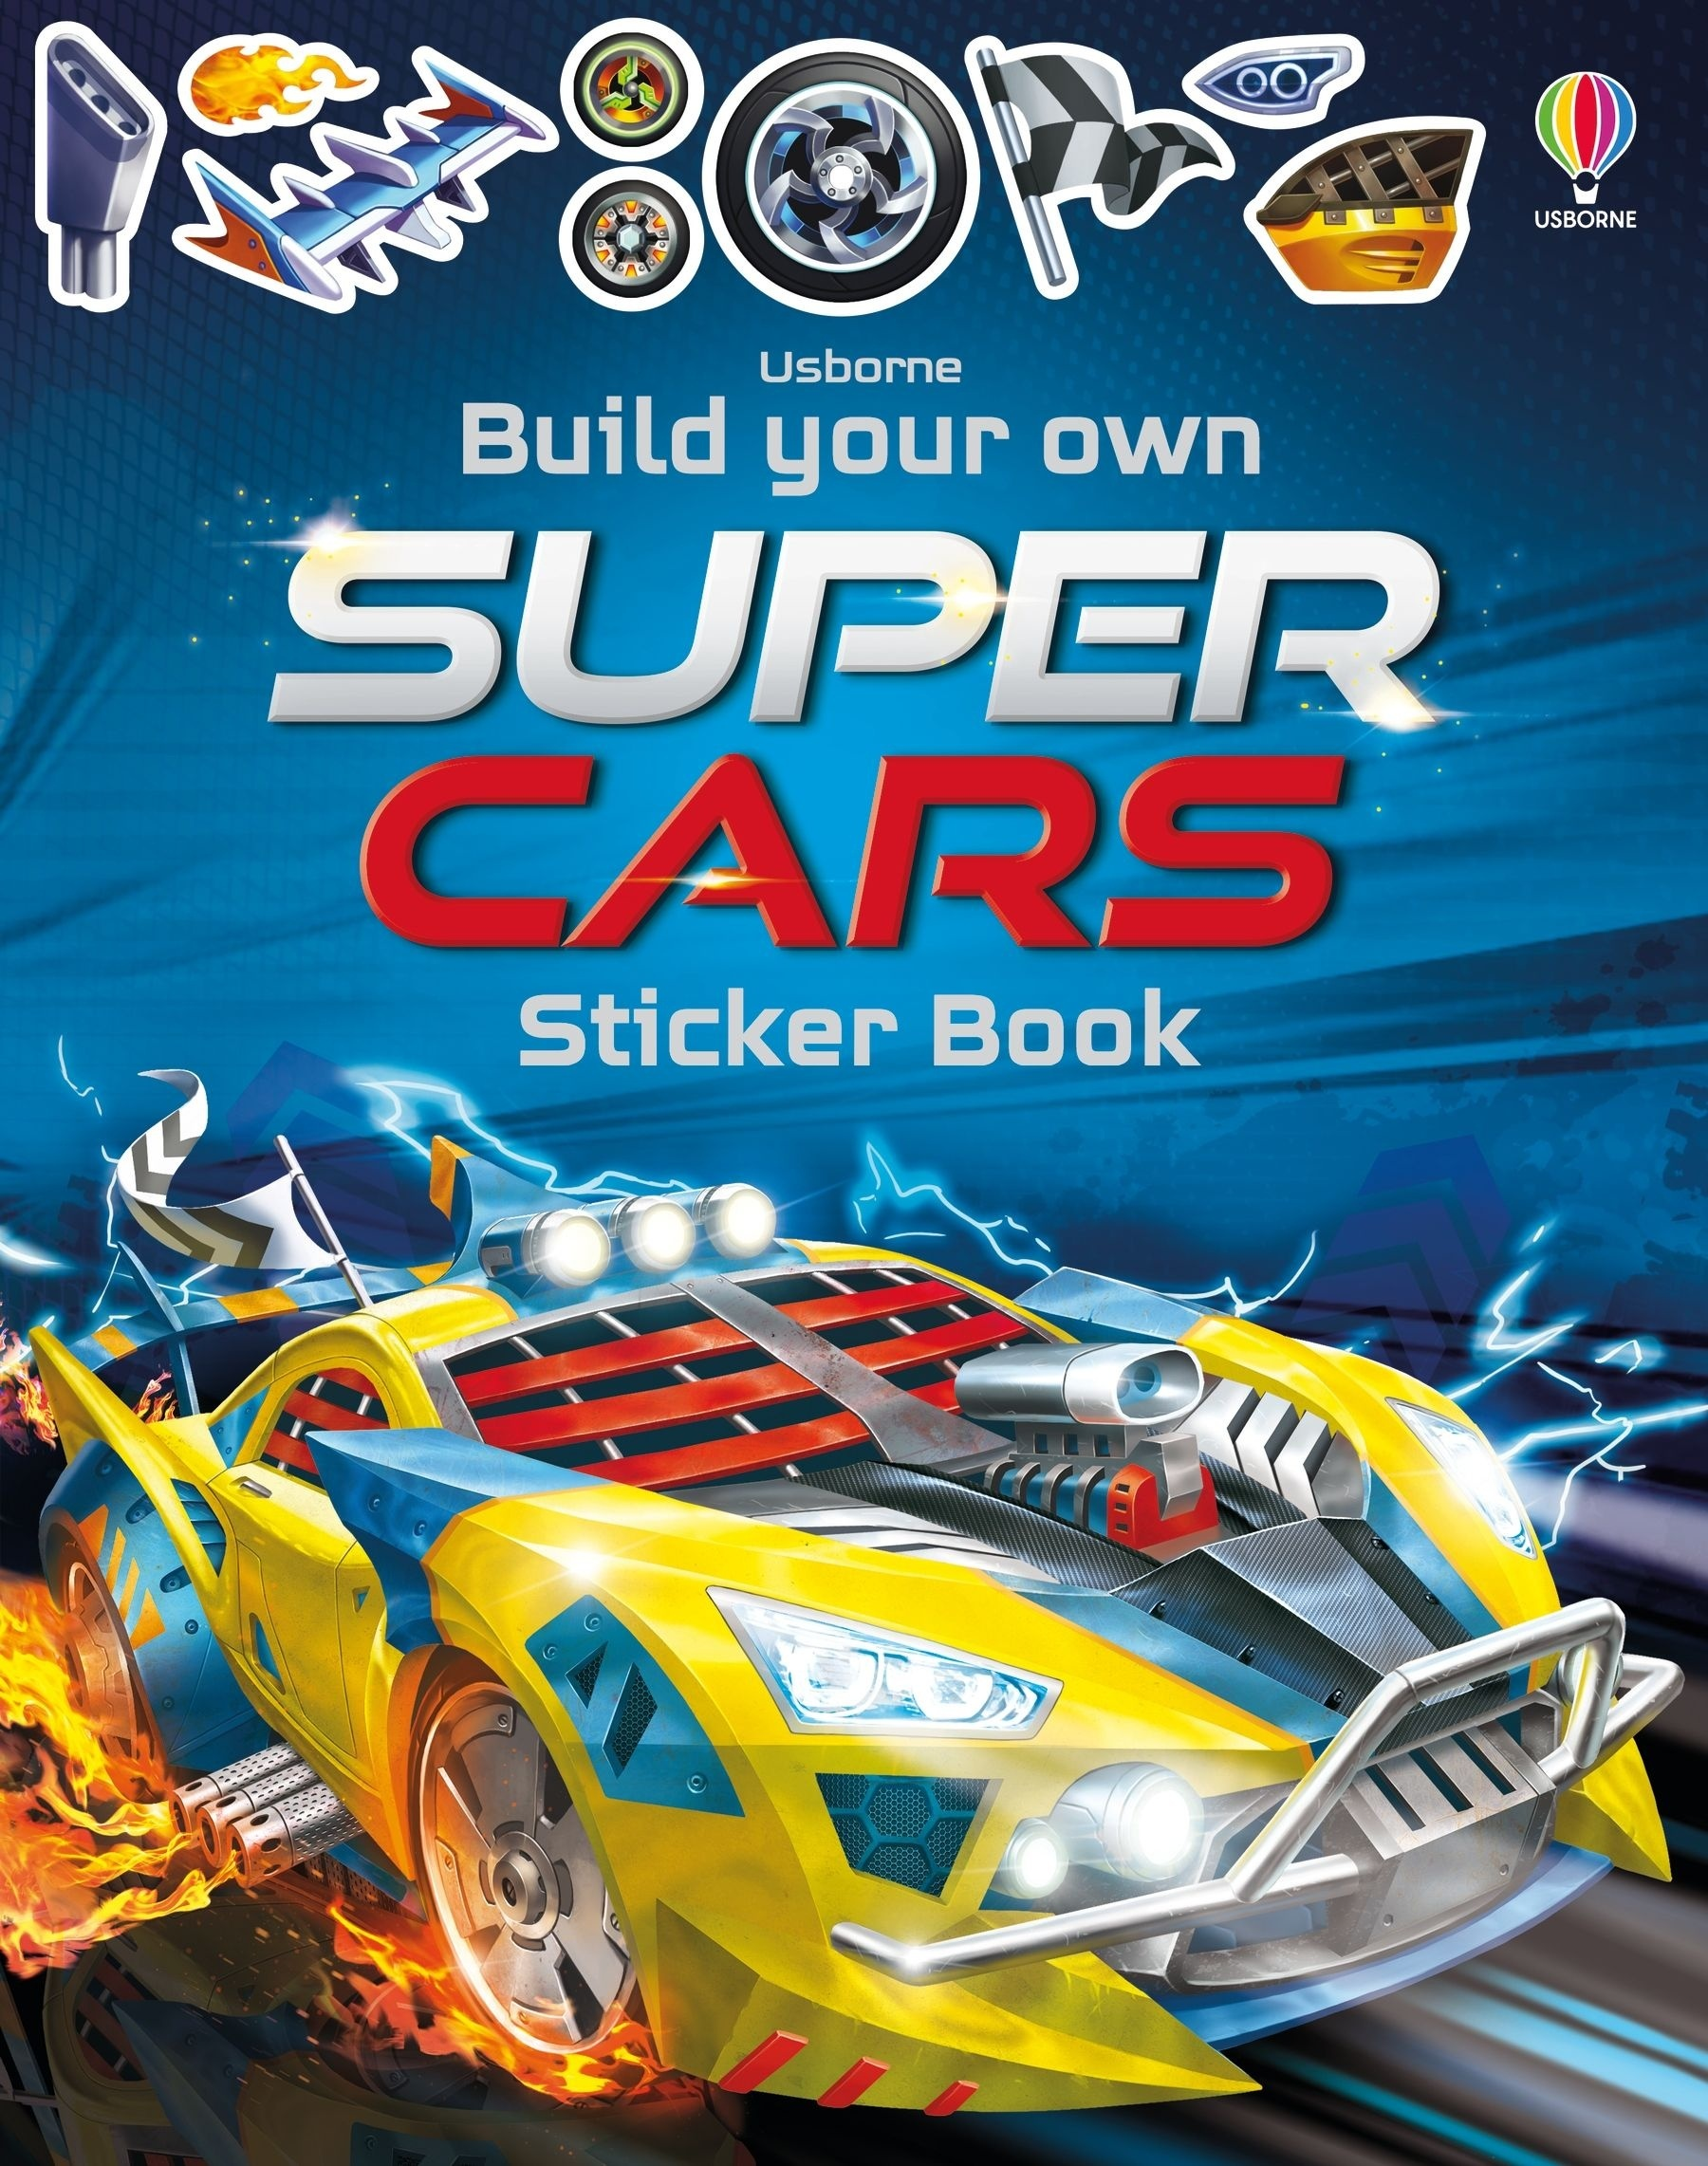 Build Your Own Supercars Sticker Book